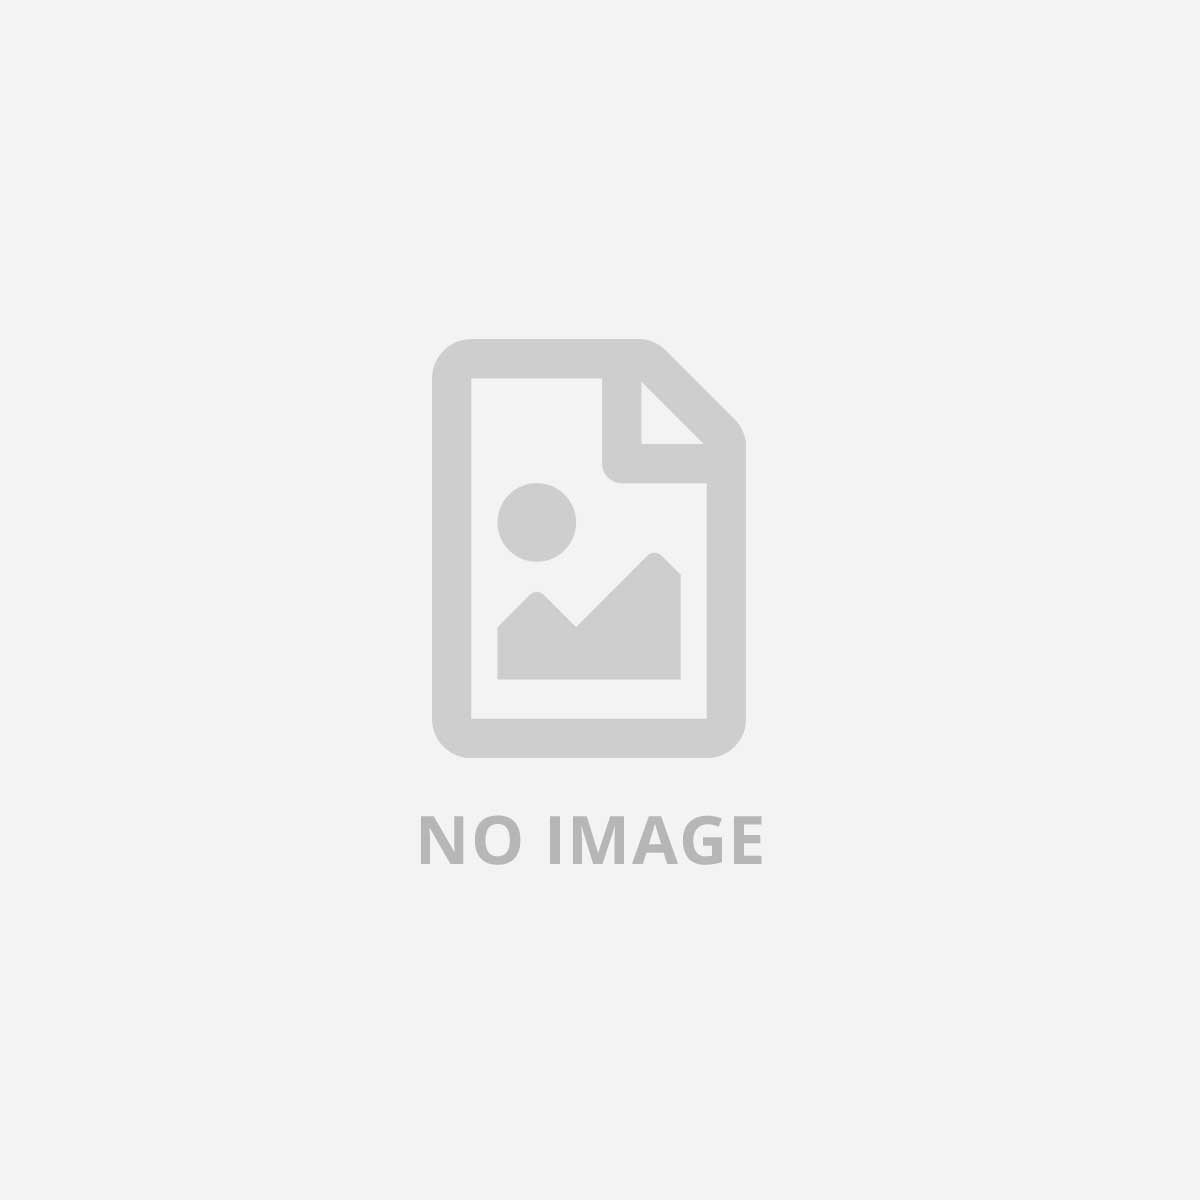 ZENYTH 4K DISPLAY 28